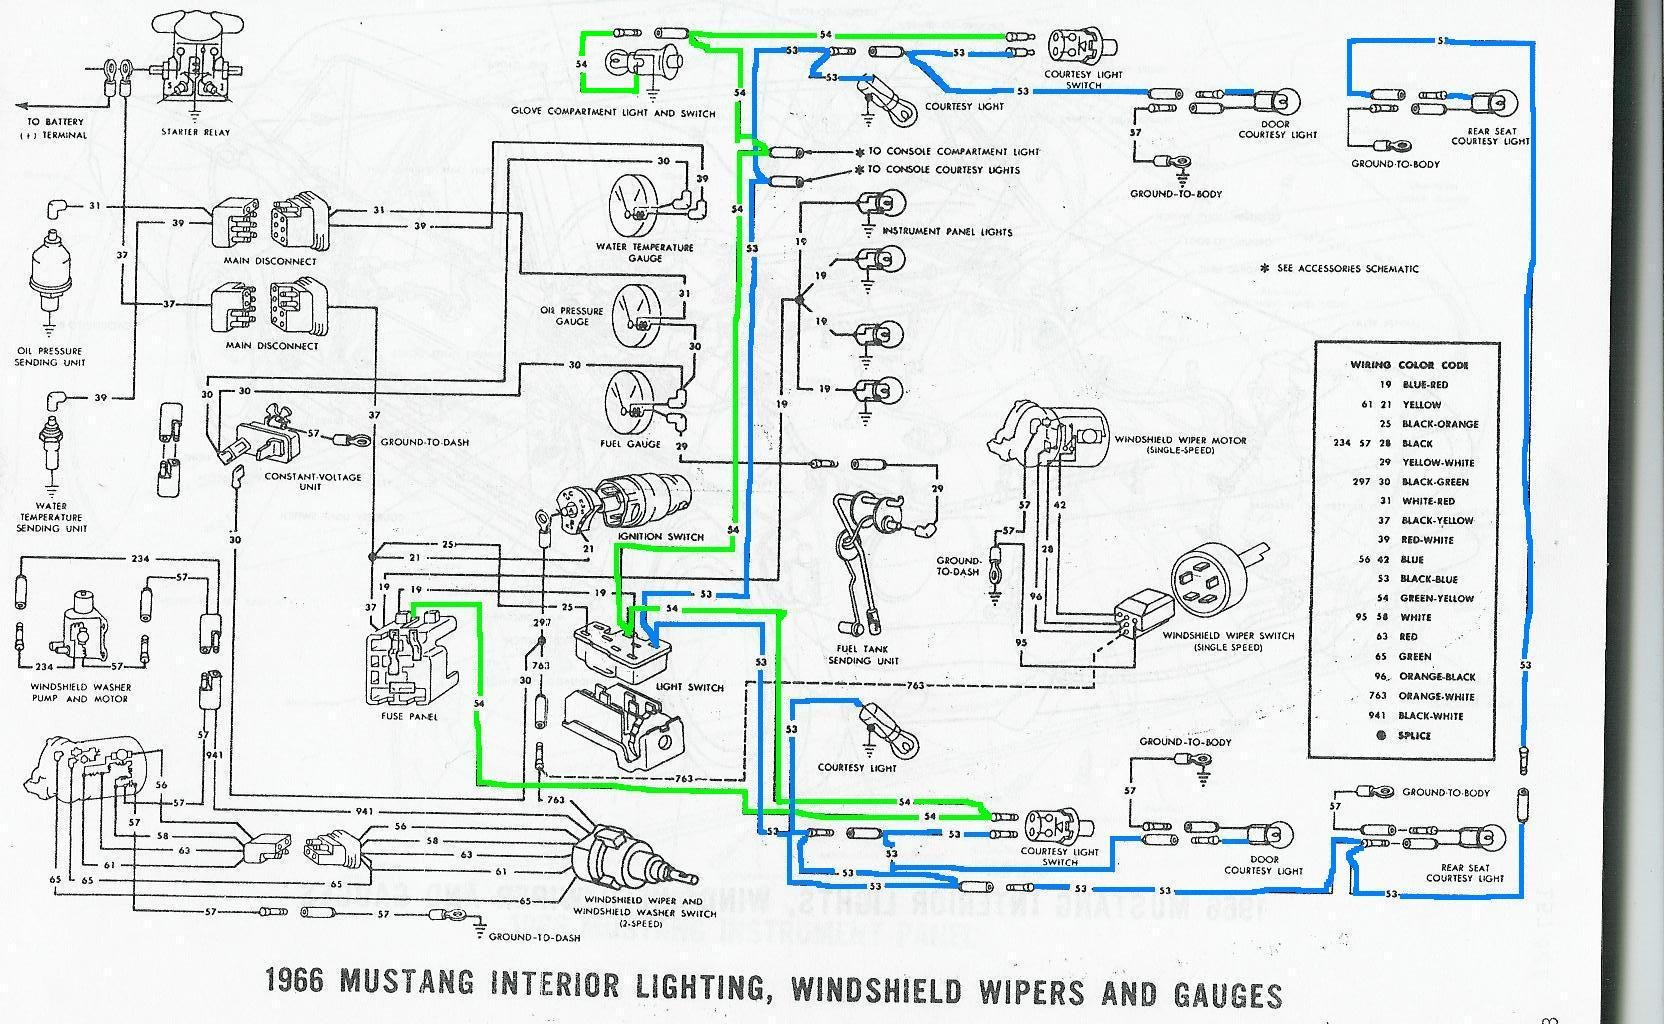 66 Mustang Lights Wiring Diagram Most Uptodate Info Skoda Fabia 2003 Fuse Box Courtesy Not Working Ford Forum Rh Allfordmustangs Com Ignition 1966 Horn